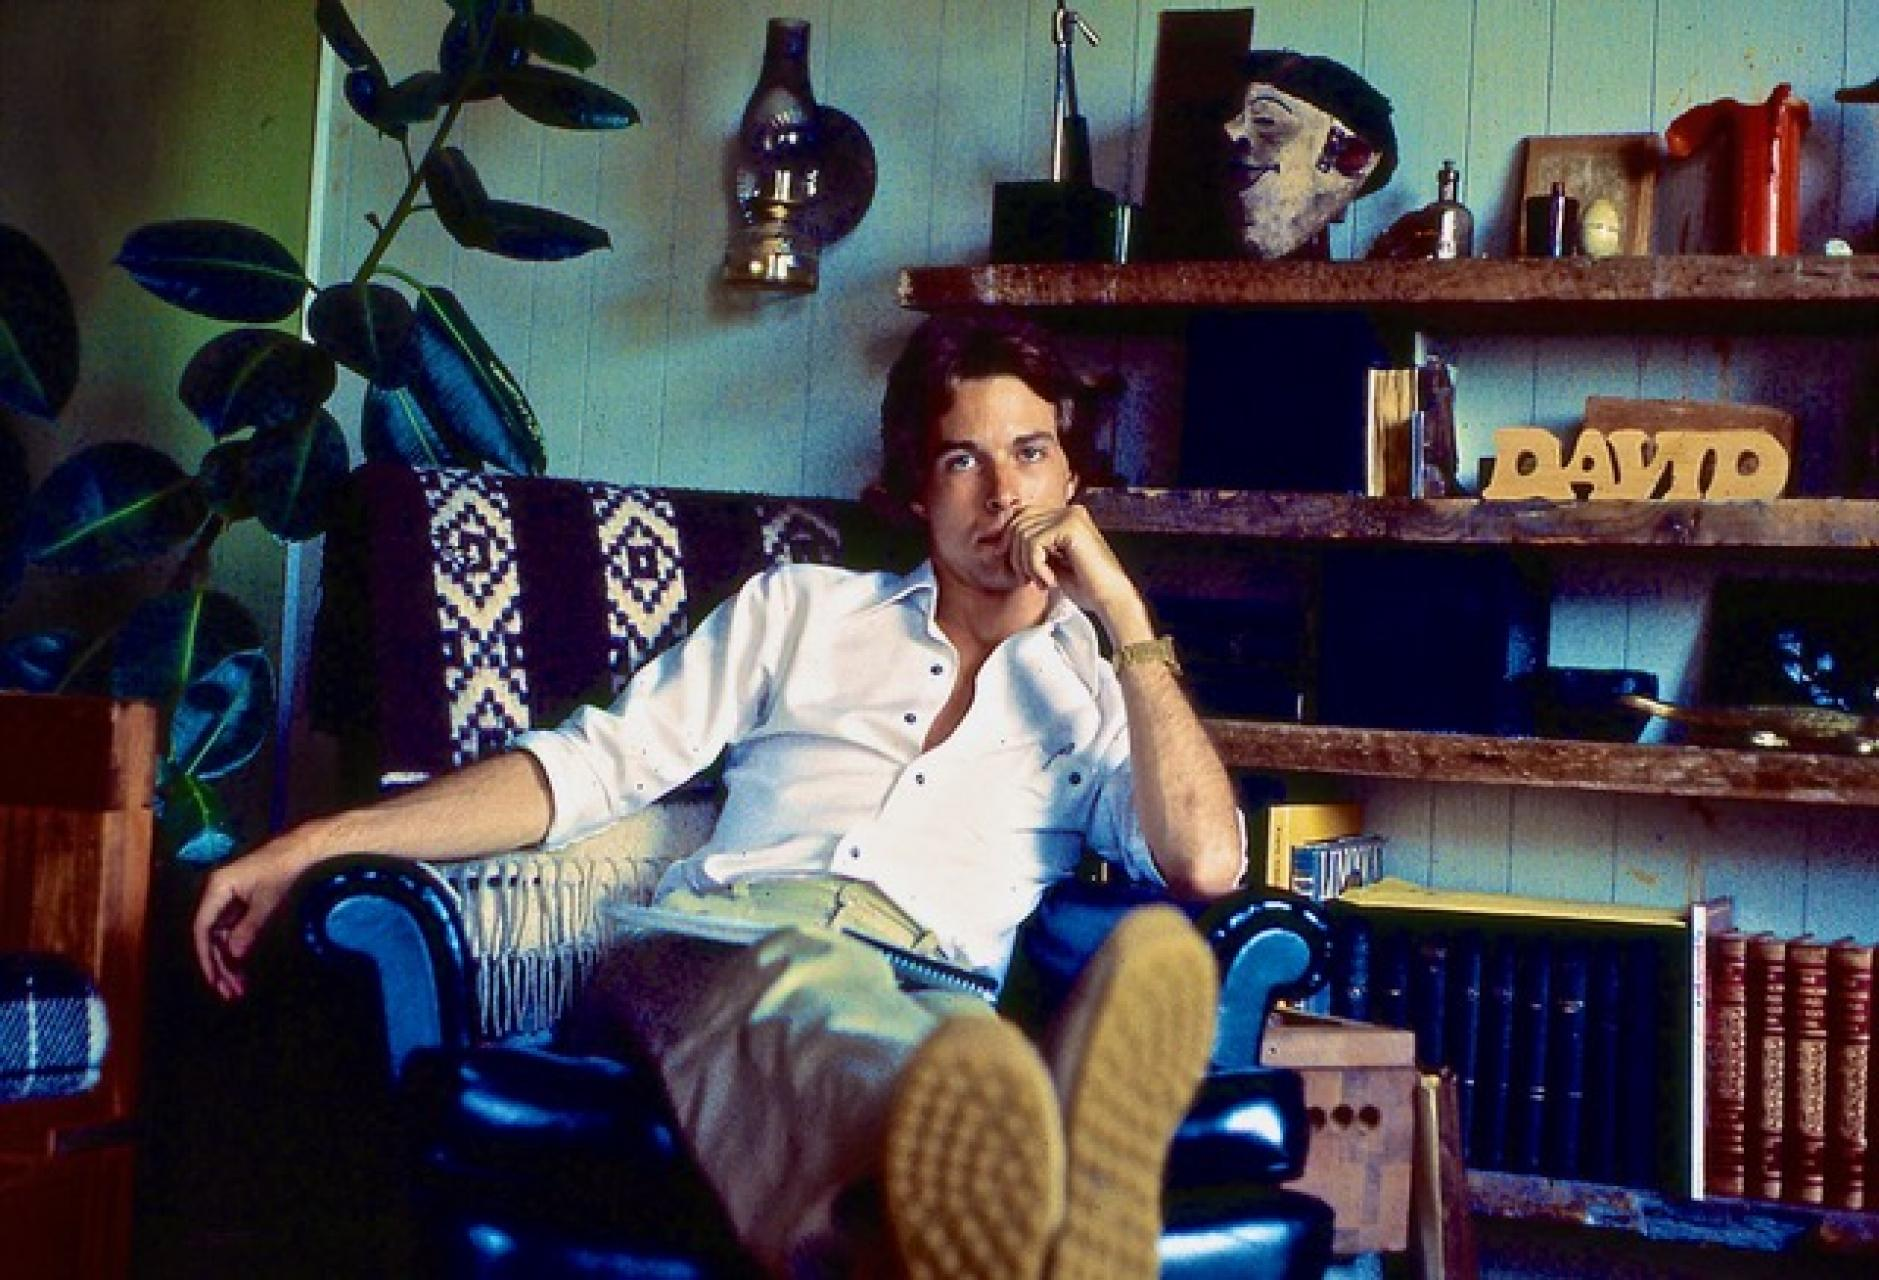 David when he was younger, relaxing in a living room.